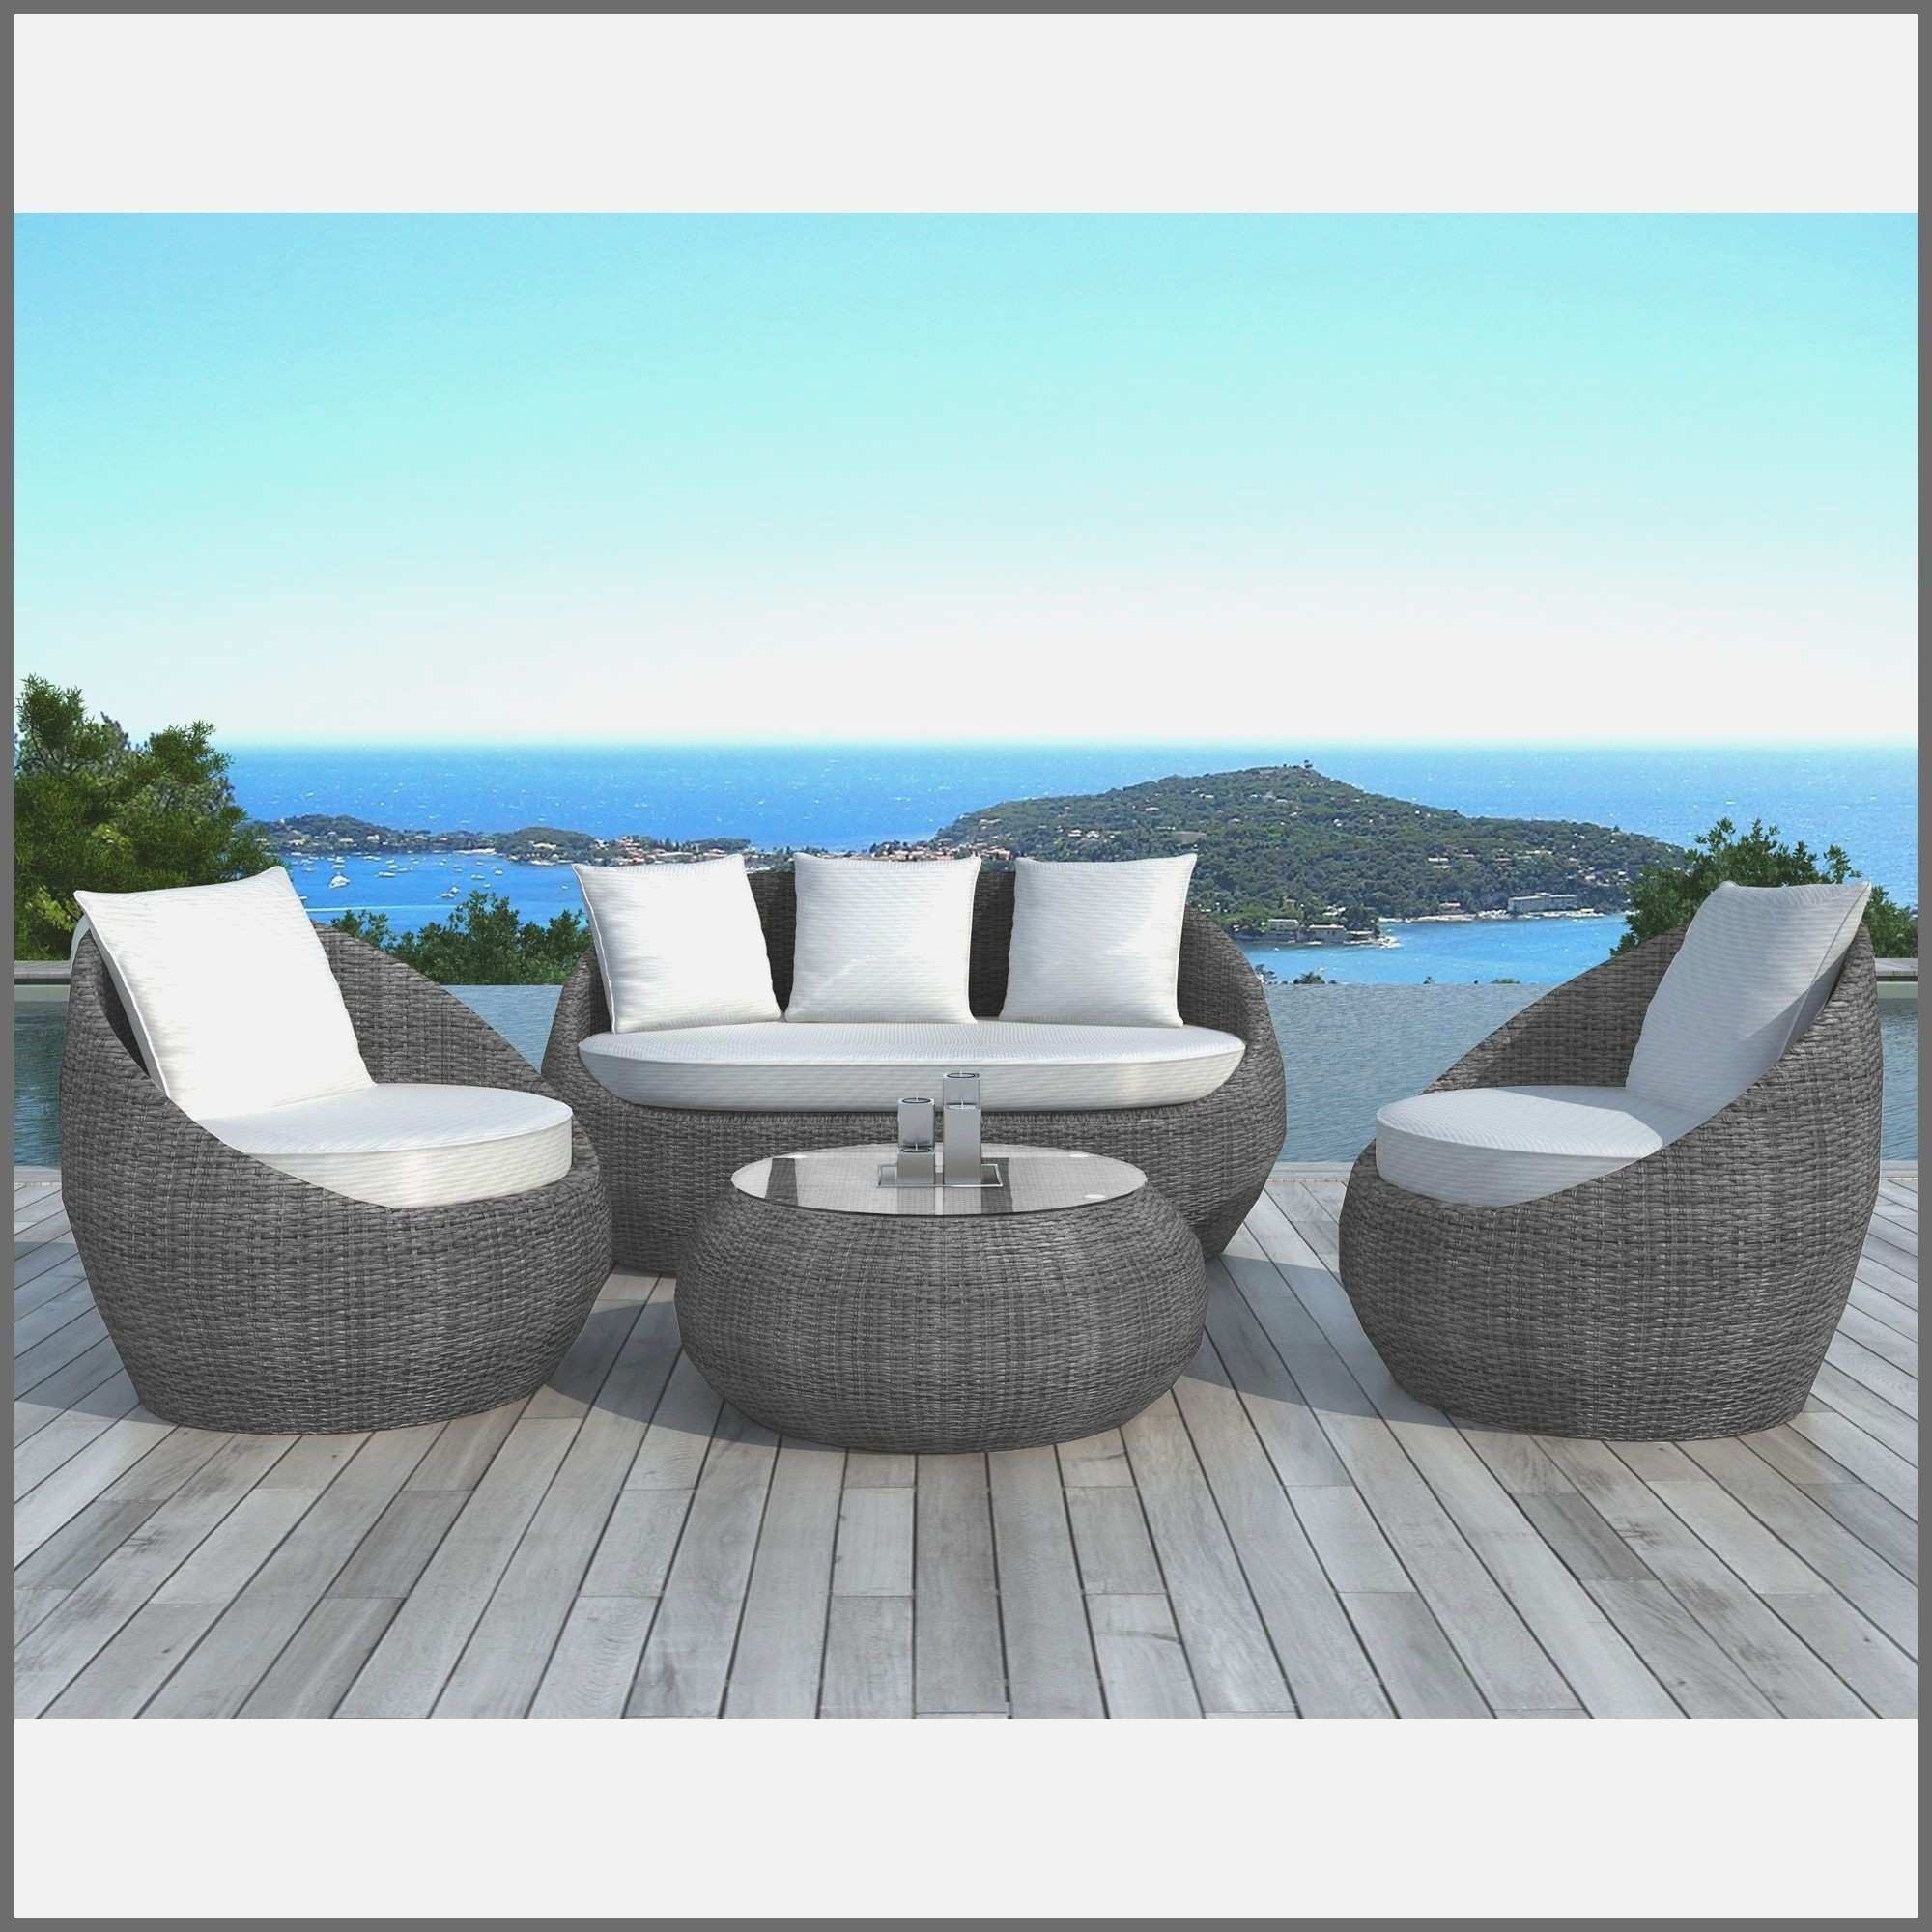 50 Salon De Jardin En Rotin Tressé Outdoor Furniture Sets Outdoor Chairs Outdoor Furniture